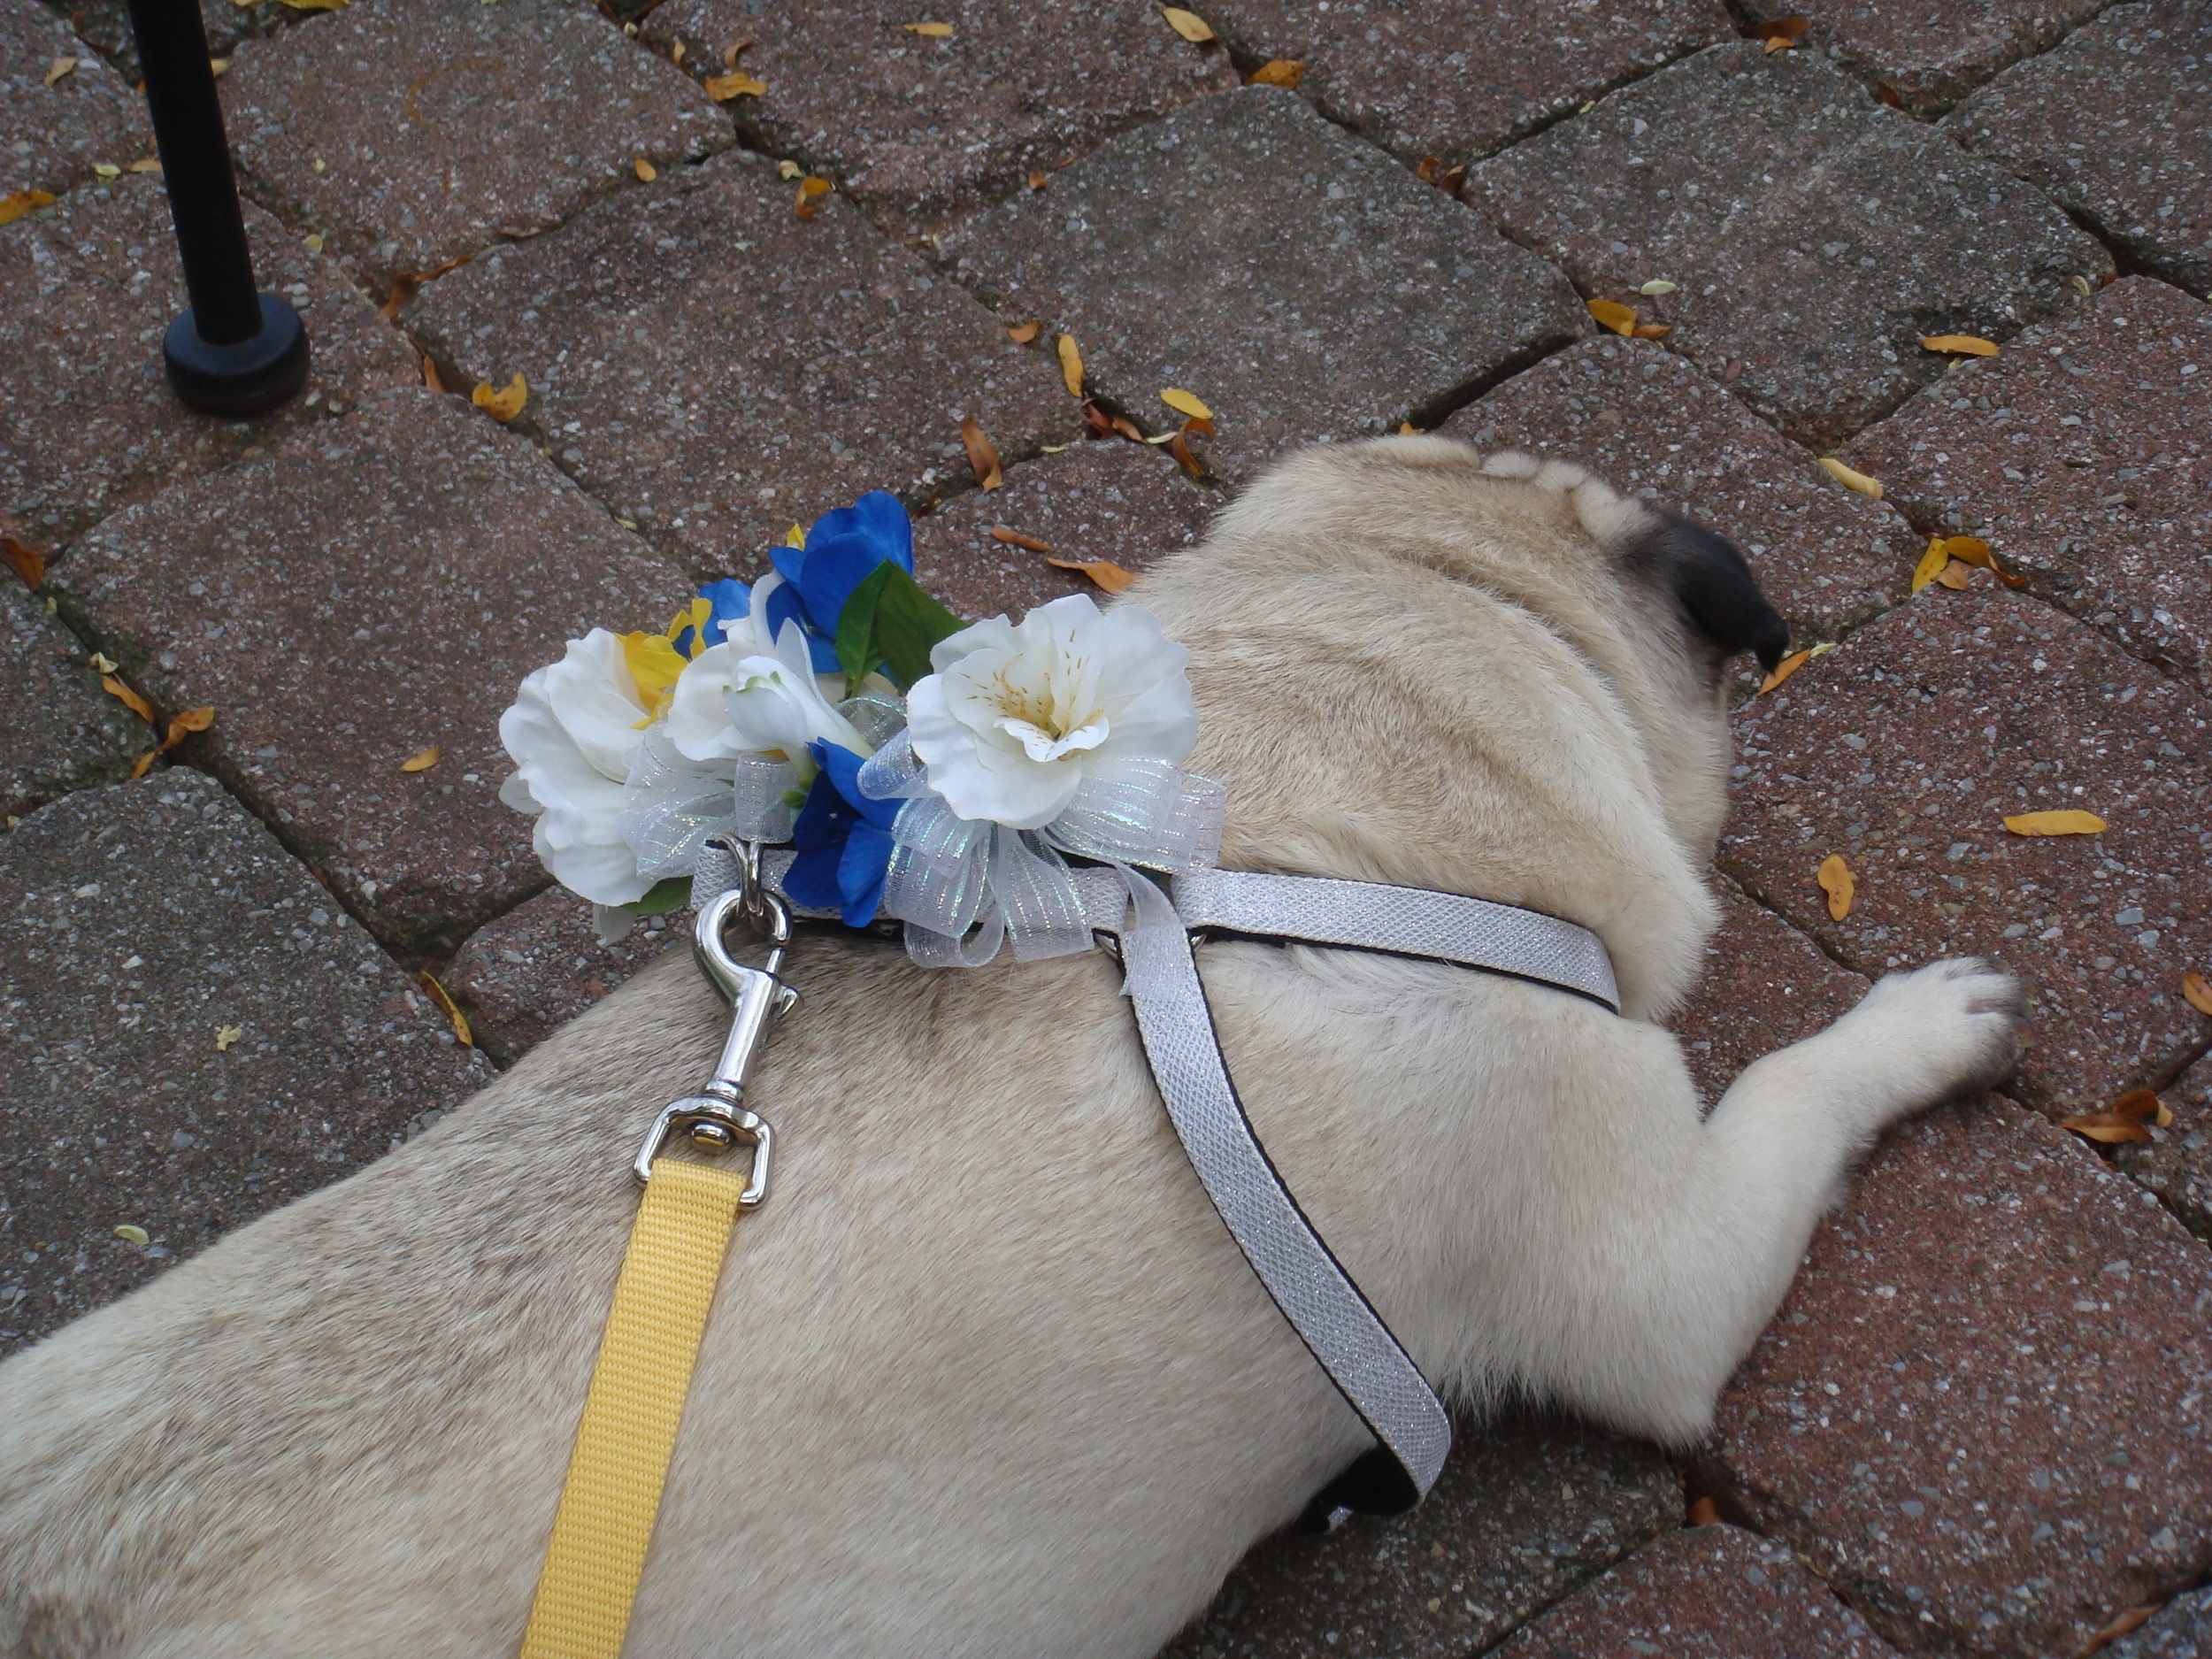 butter-the-flower-pug_4967746926_o.jpg